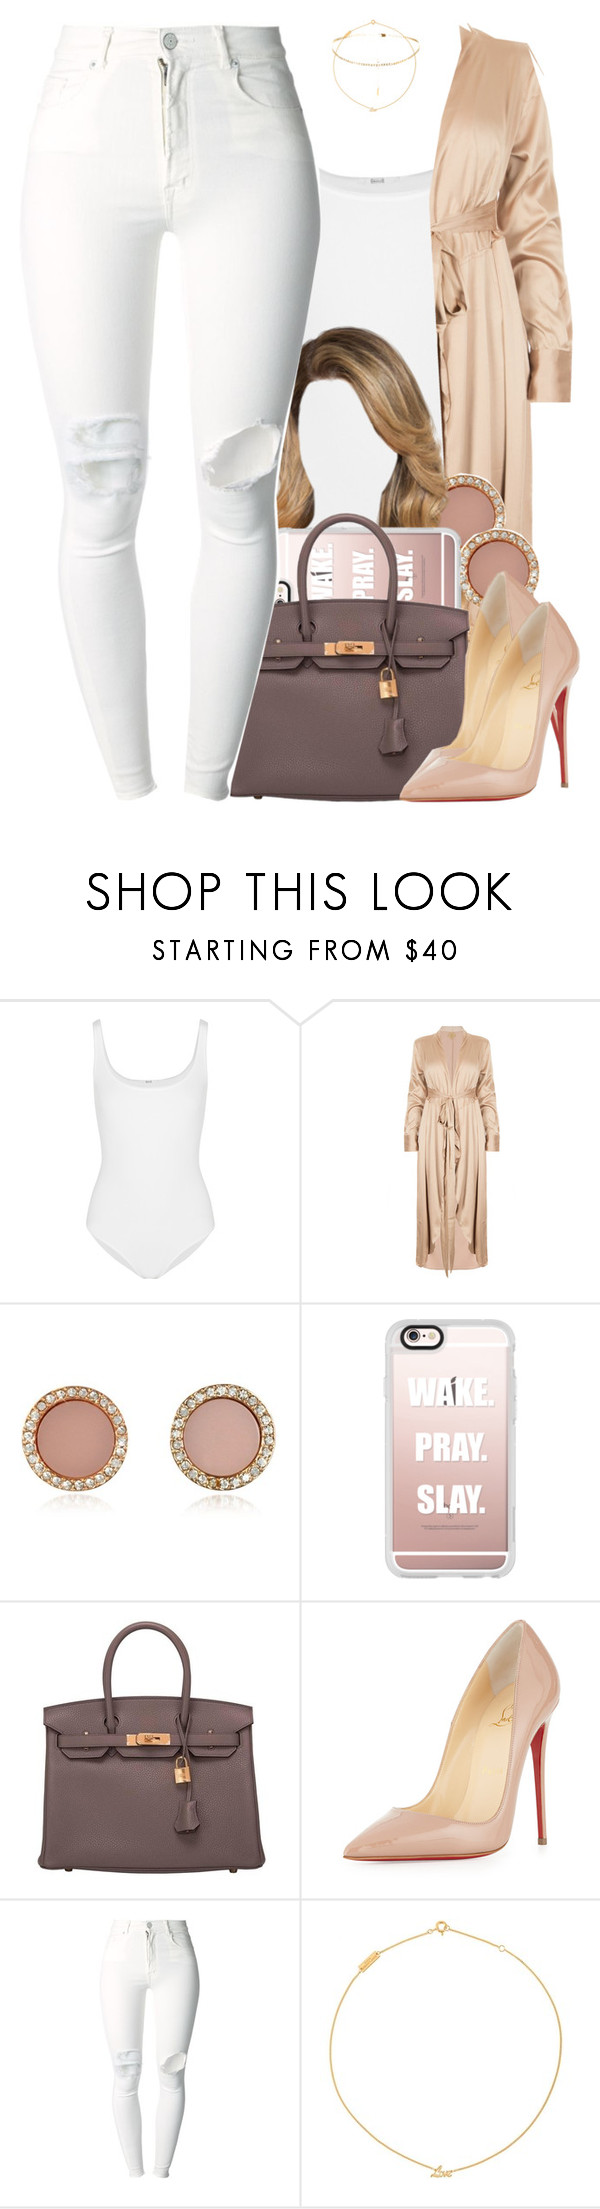 """""""30 July, 2016"""" by jamilah-rochon ❤ liked on Polyvore featuring Wolford, Michael Kors, Casetify, Hermès, Christian Louboutin, (+) PEOPLE and Yves Saint Laurent"""